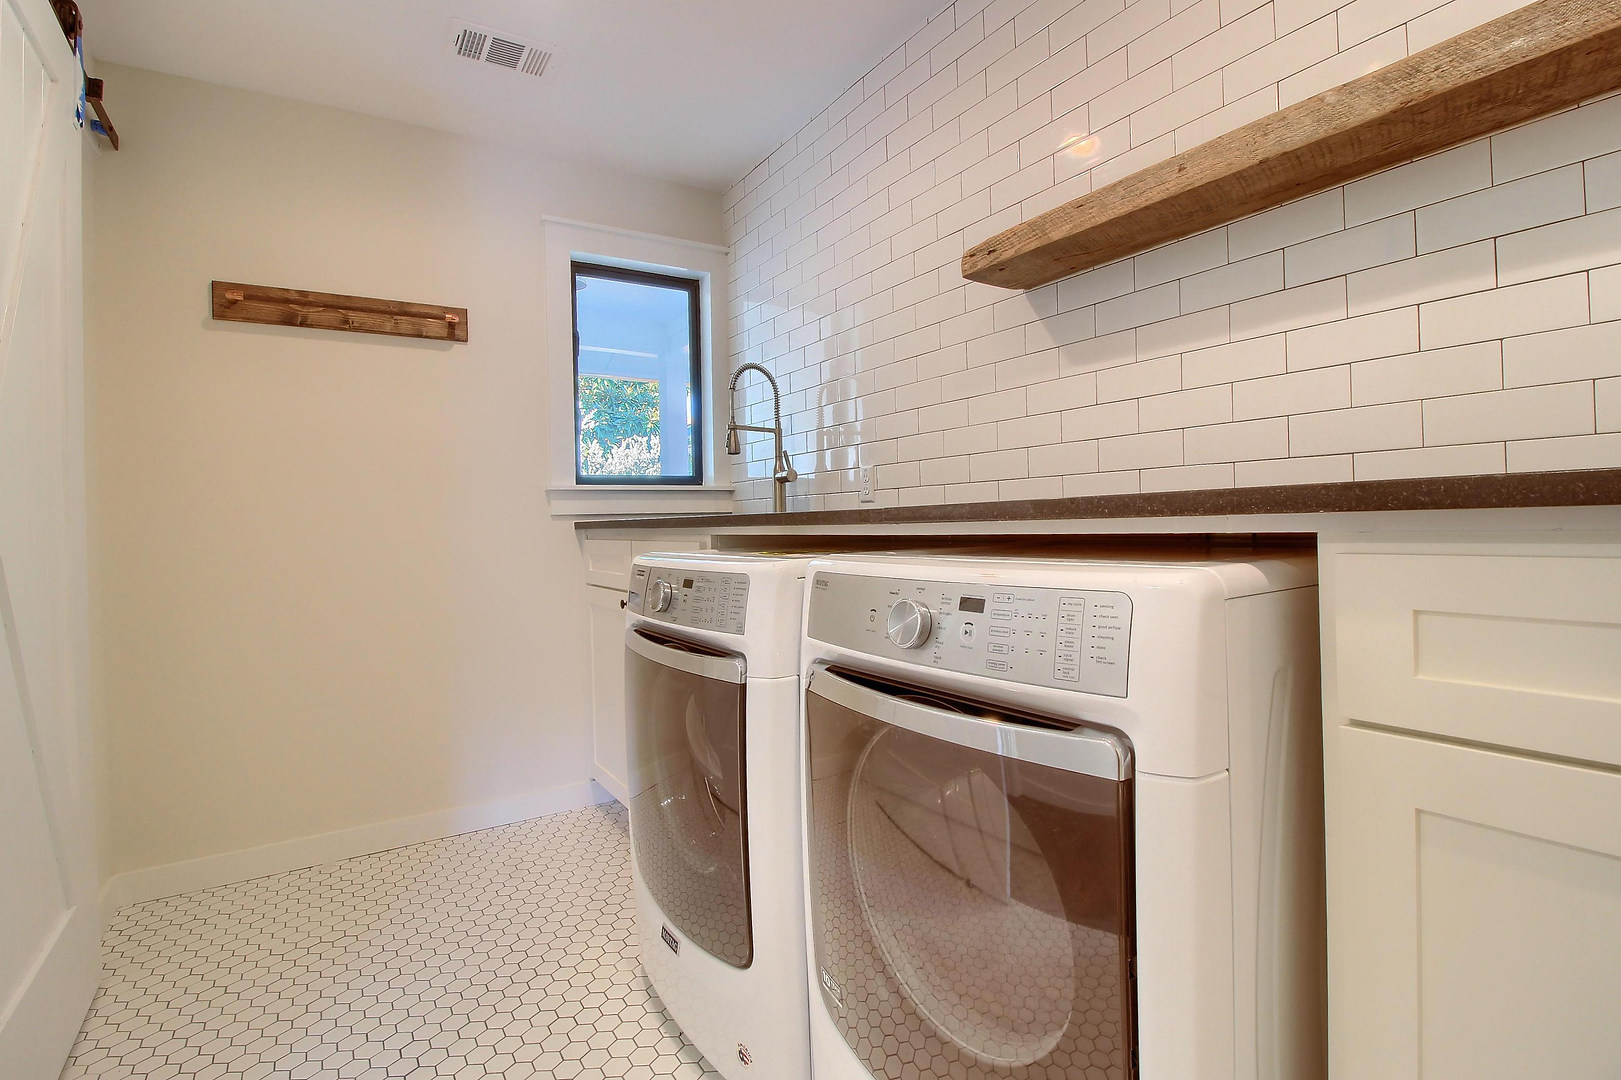 Home Renovation Laundry Room on Bouldin in Austin, TX